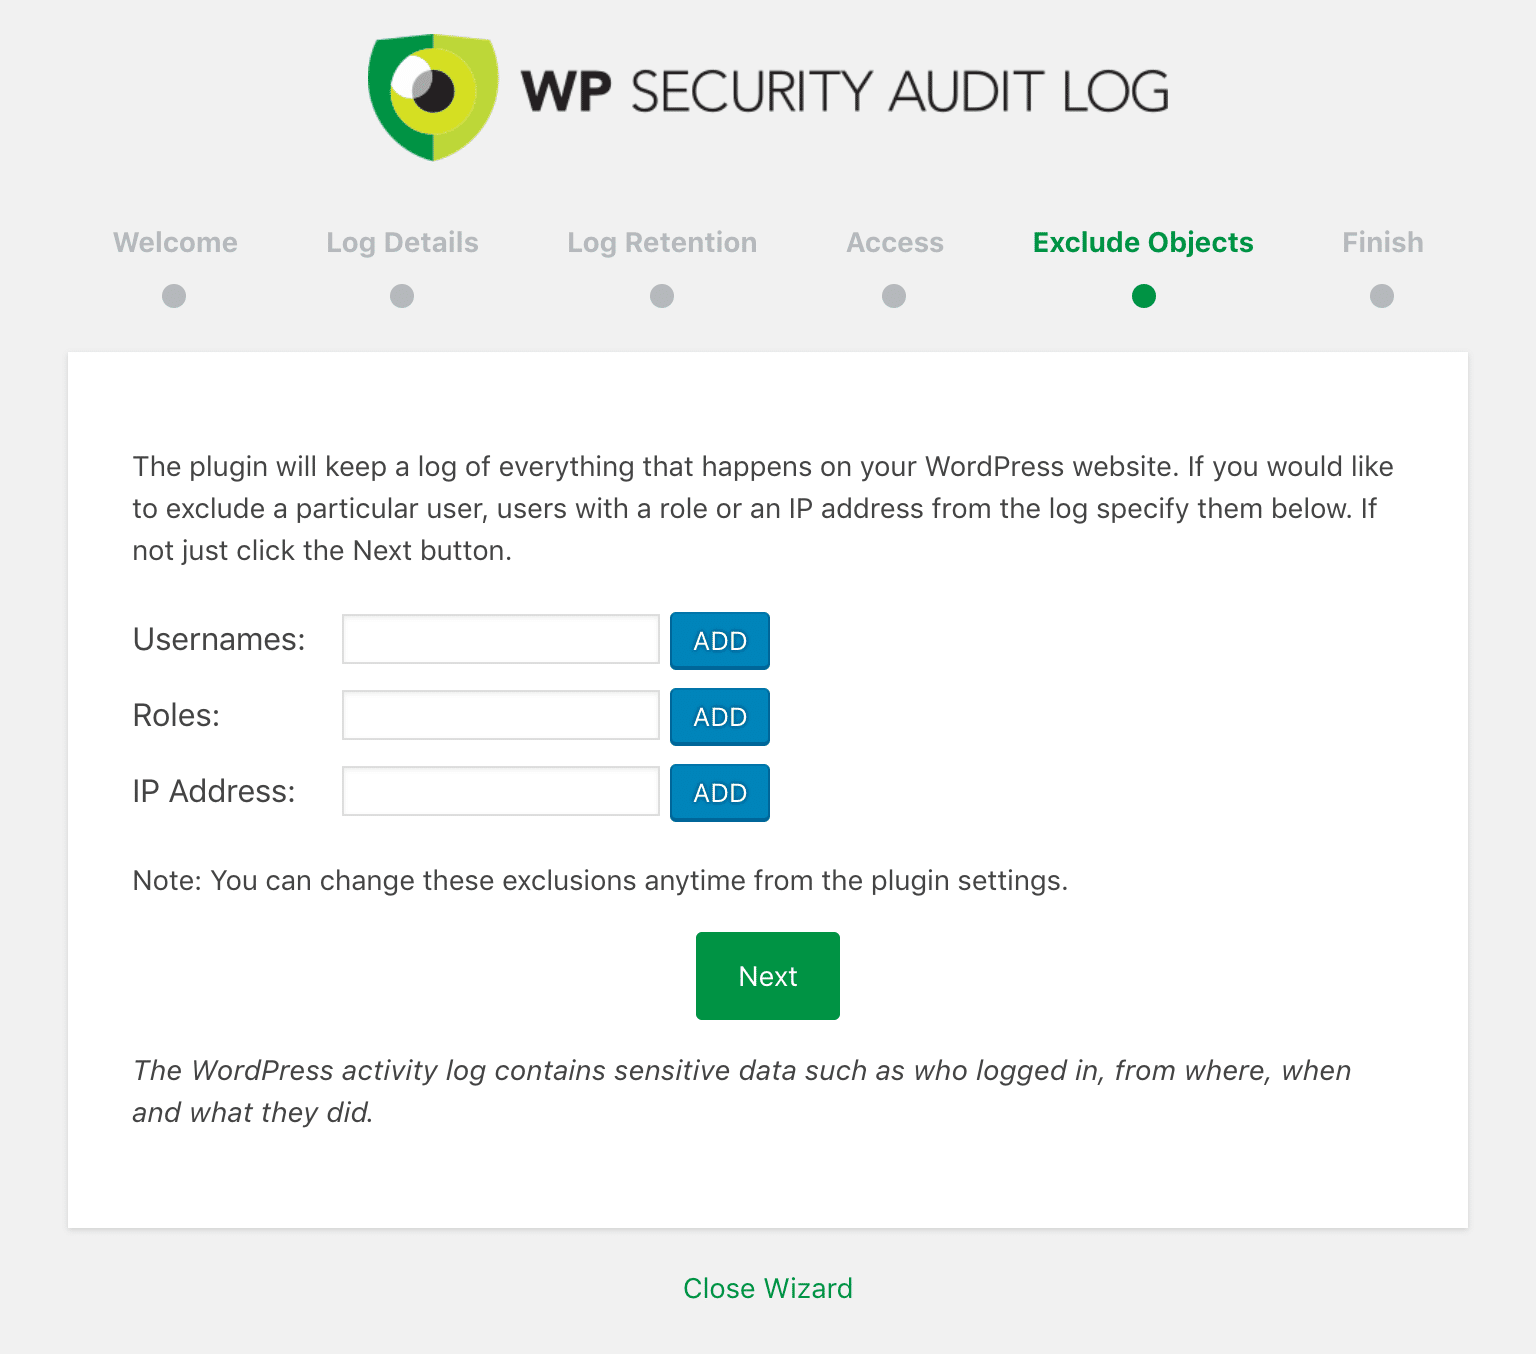 WP Security Audit Log exclude objects